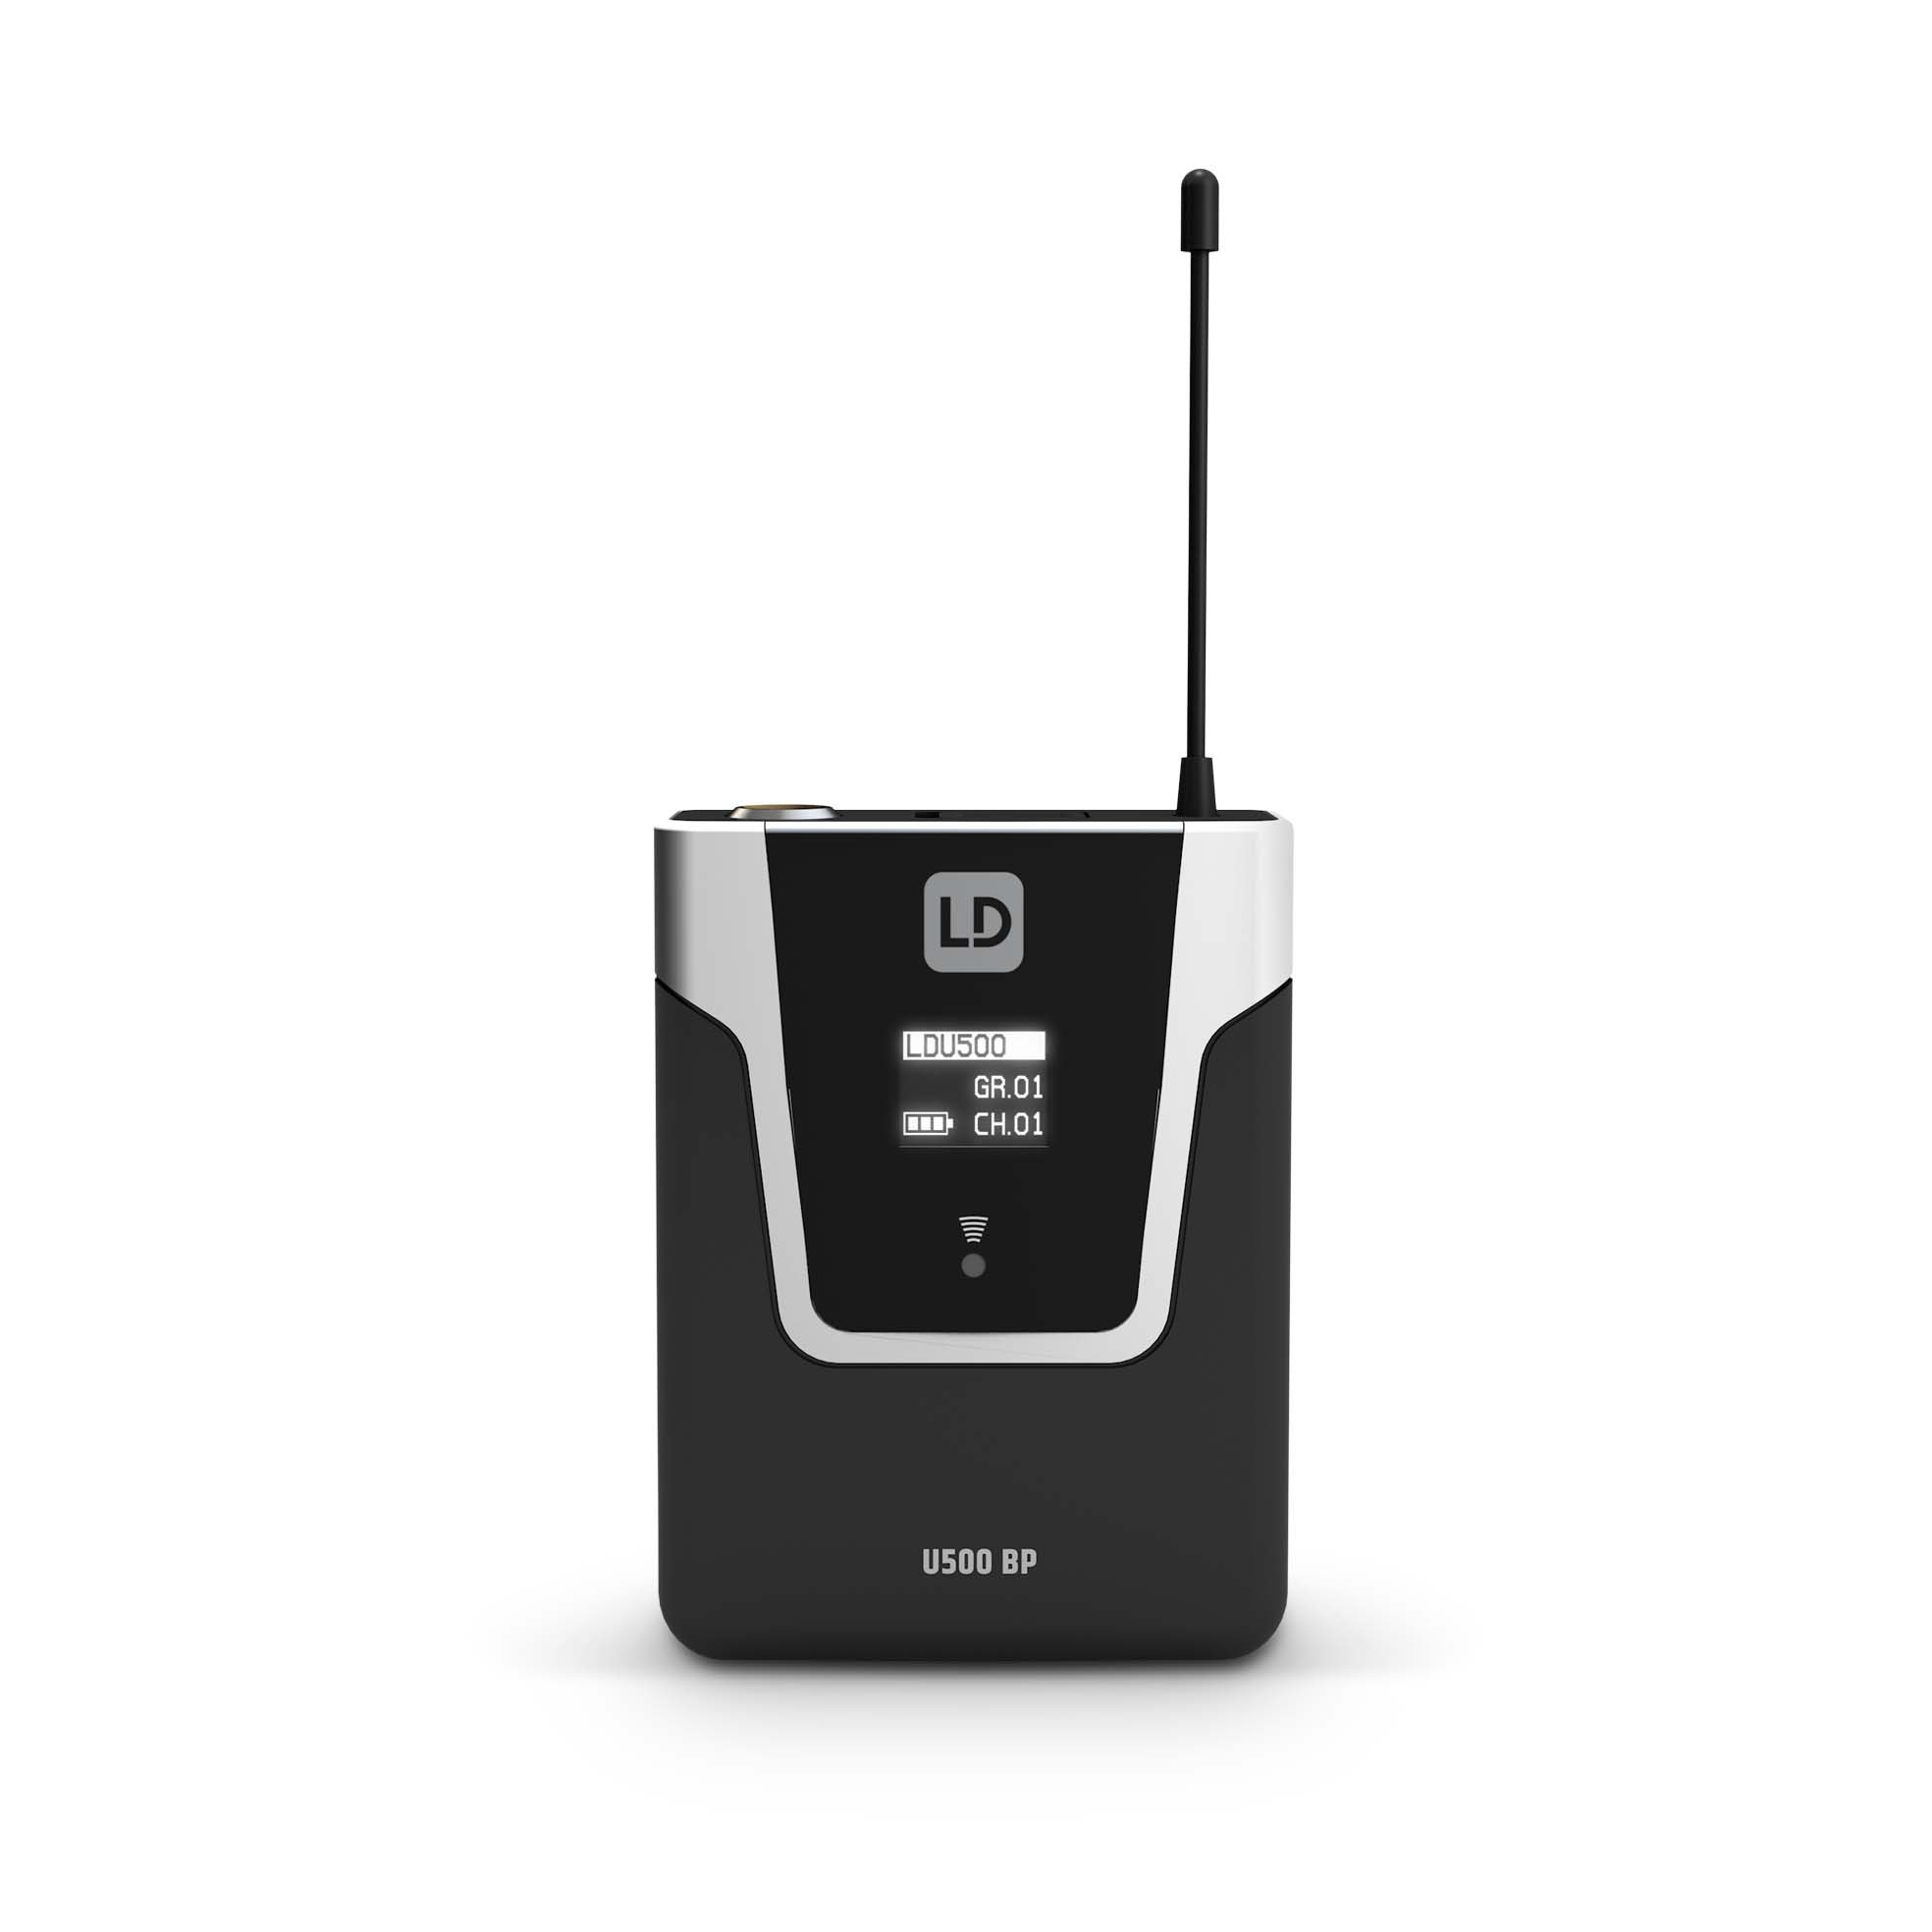 U508 BPH 2 Wireless Microphone System with 2 x Bodypack and 2 x Headset